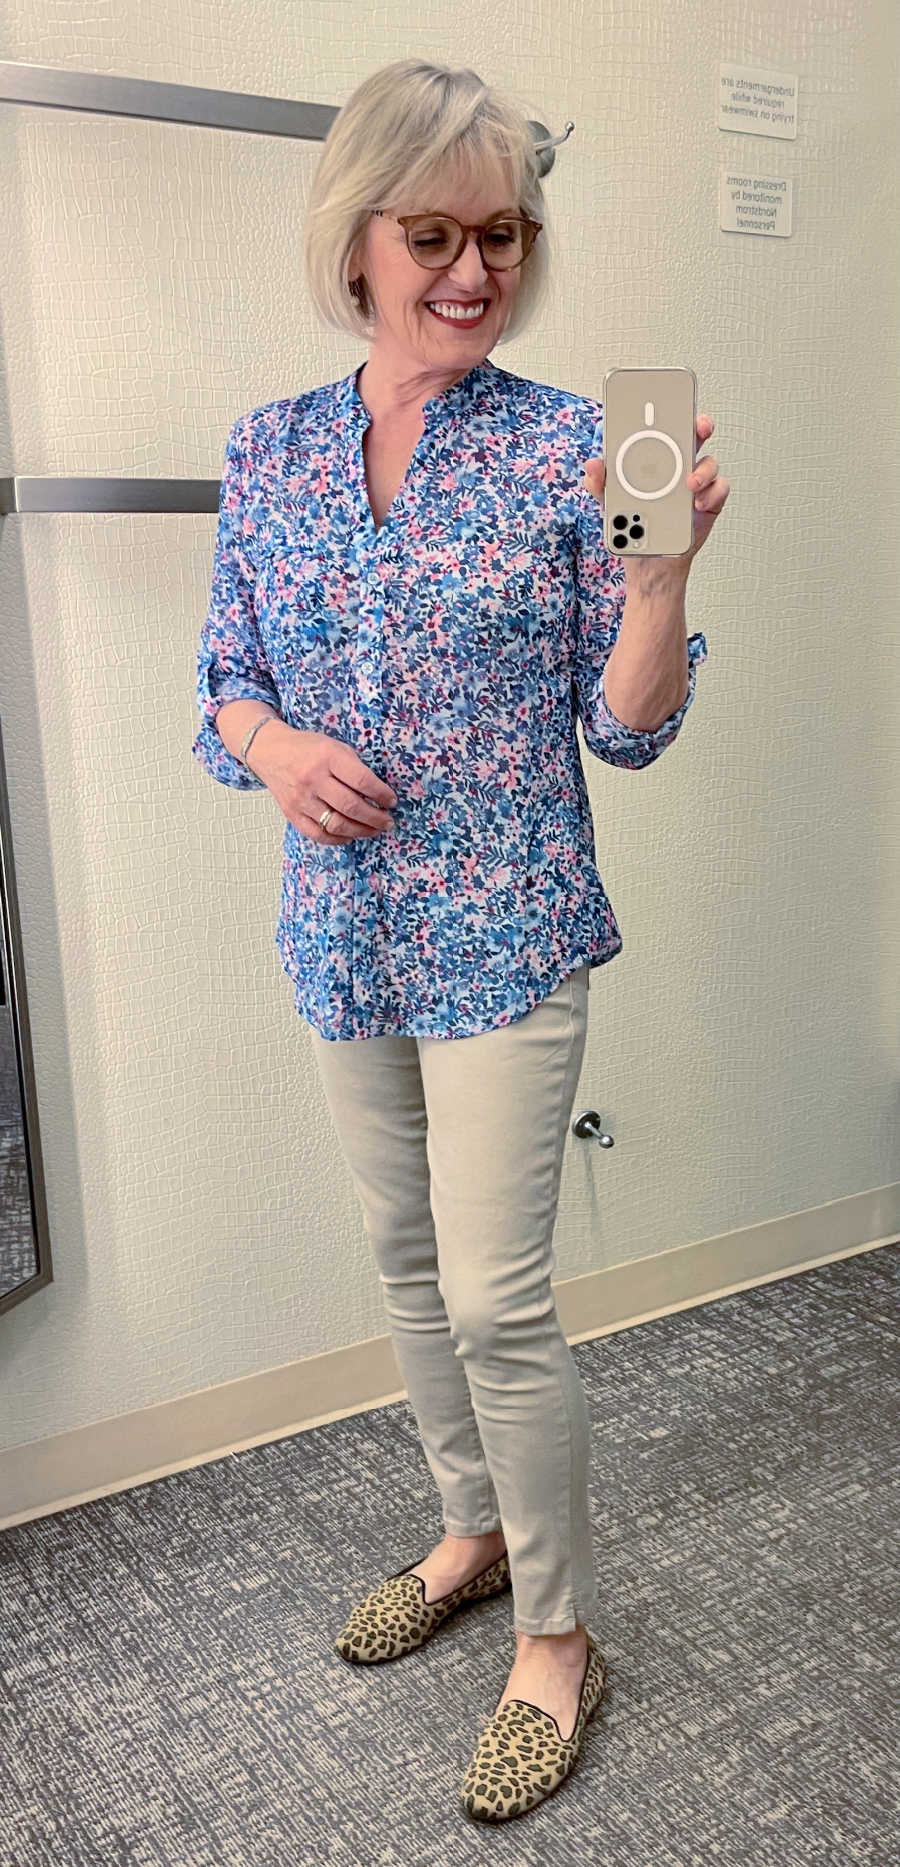 blonde woman taking picture in mirror of her wearing floral blouse and tan jeans